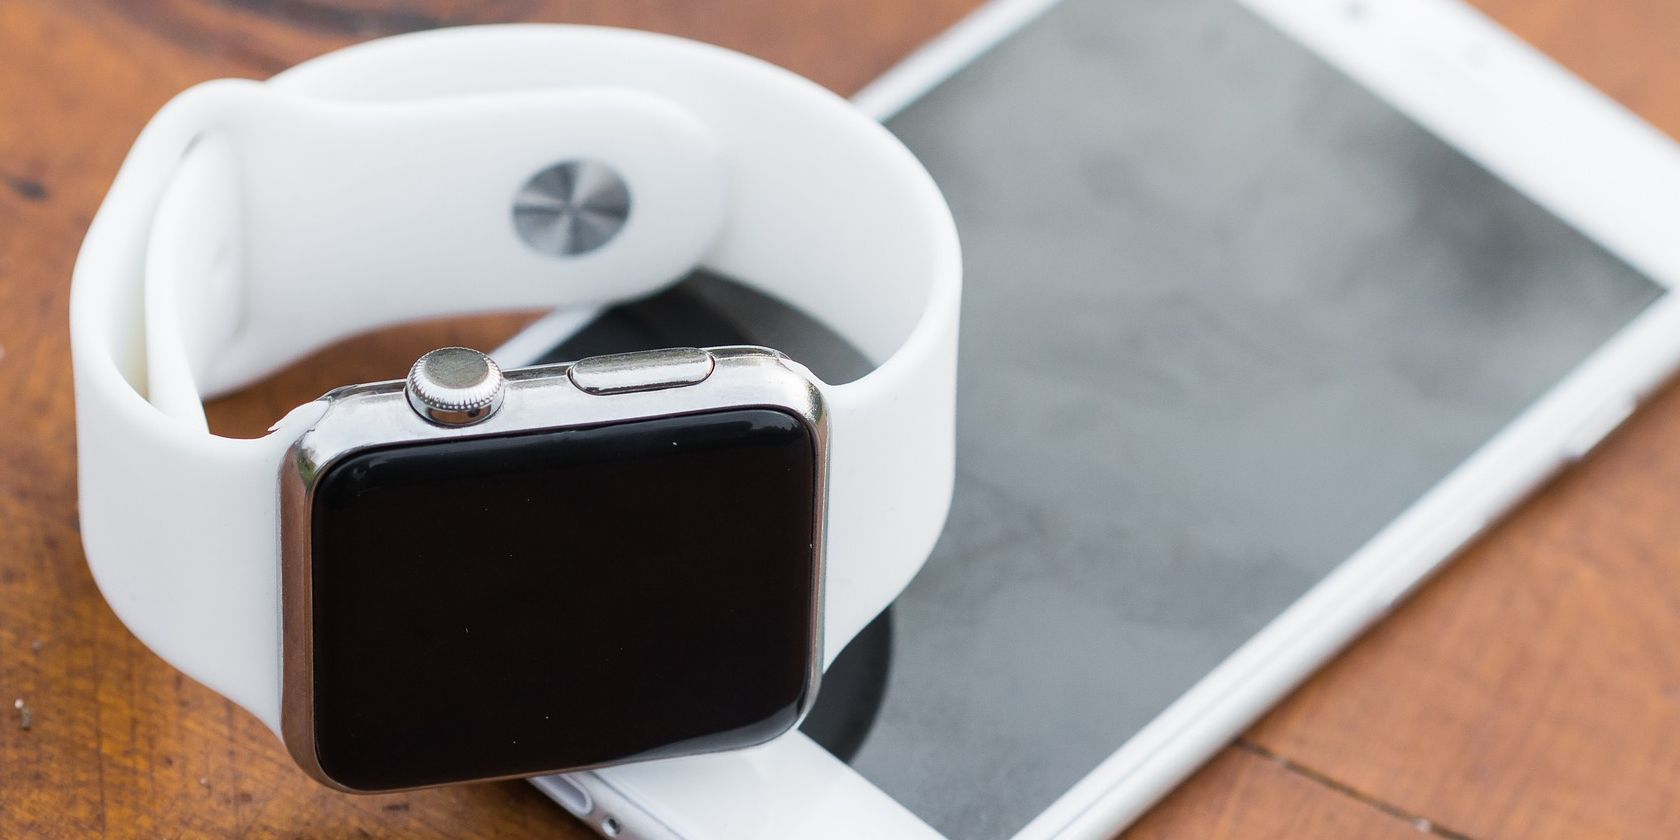 How to Unpair the Apple Watch from Your Phone